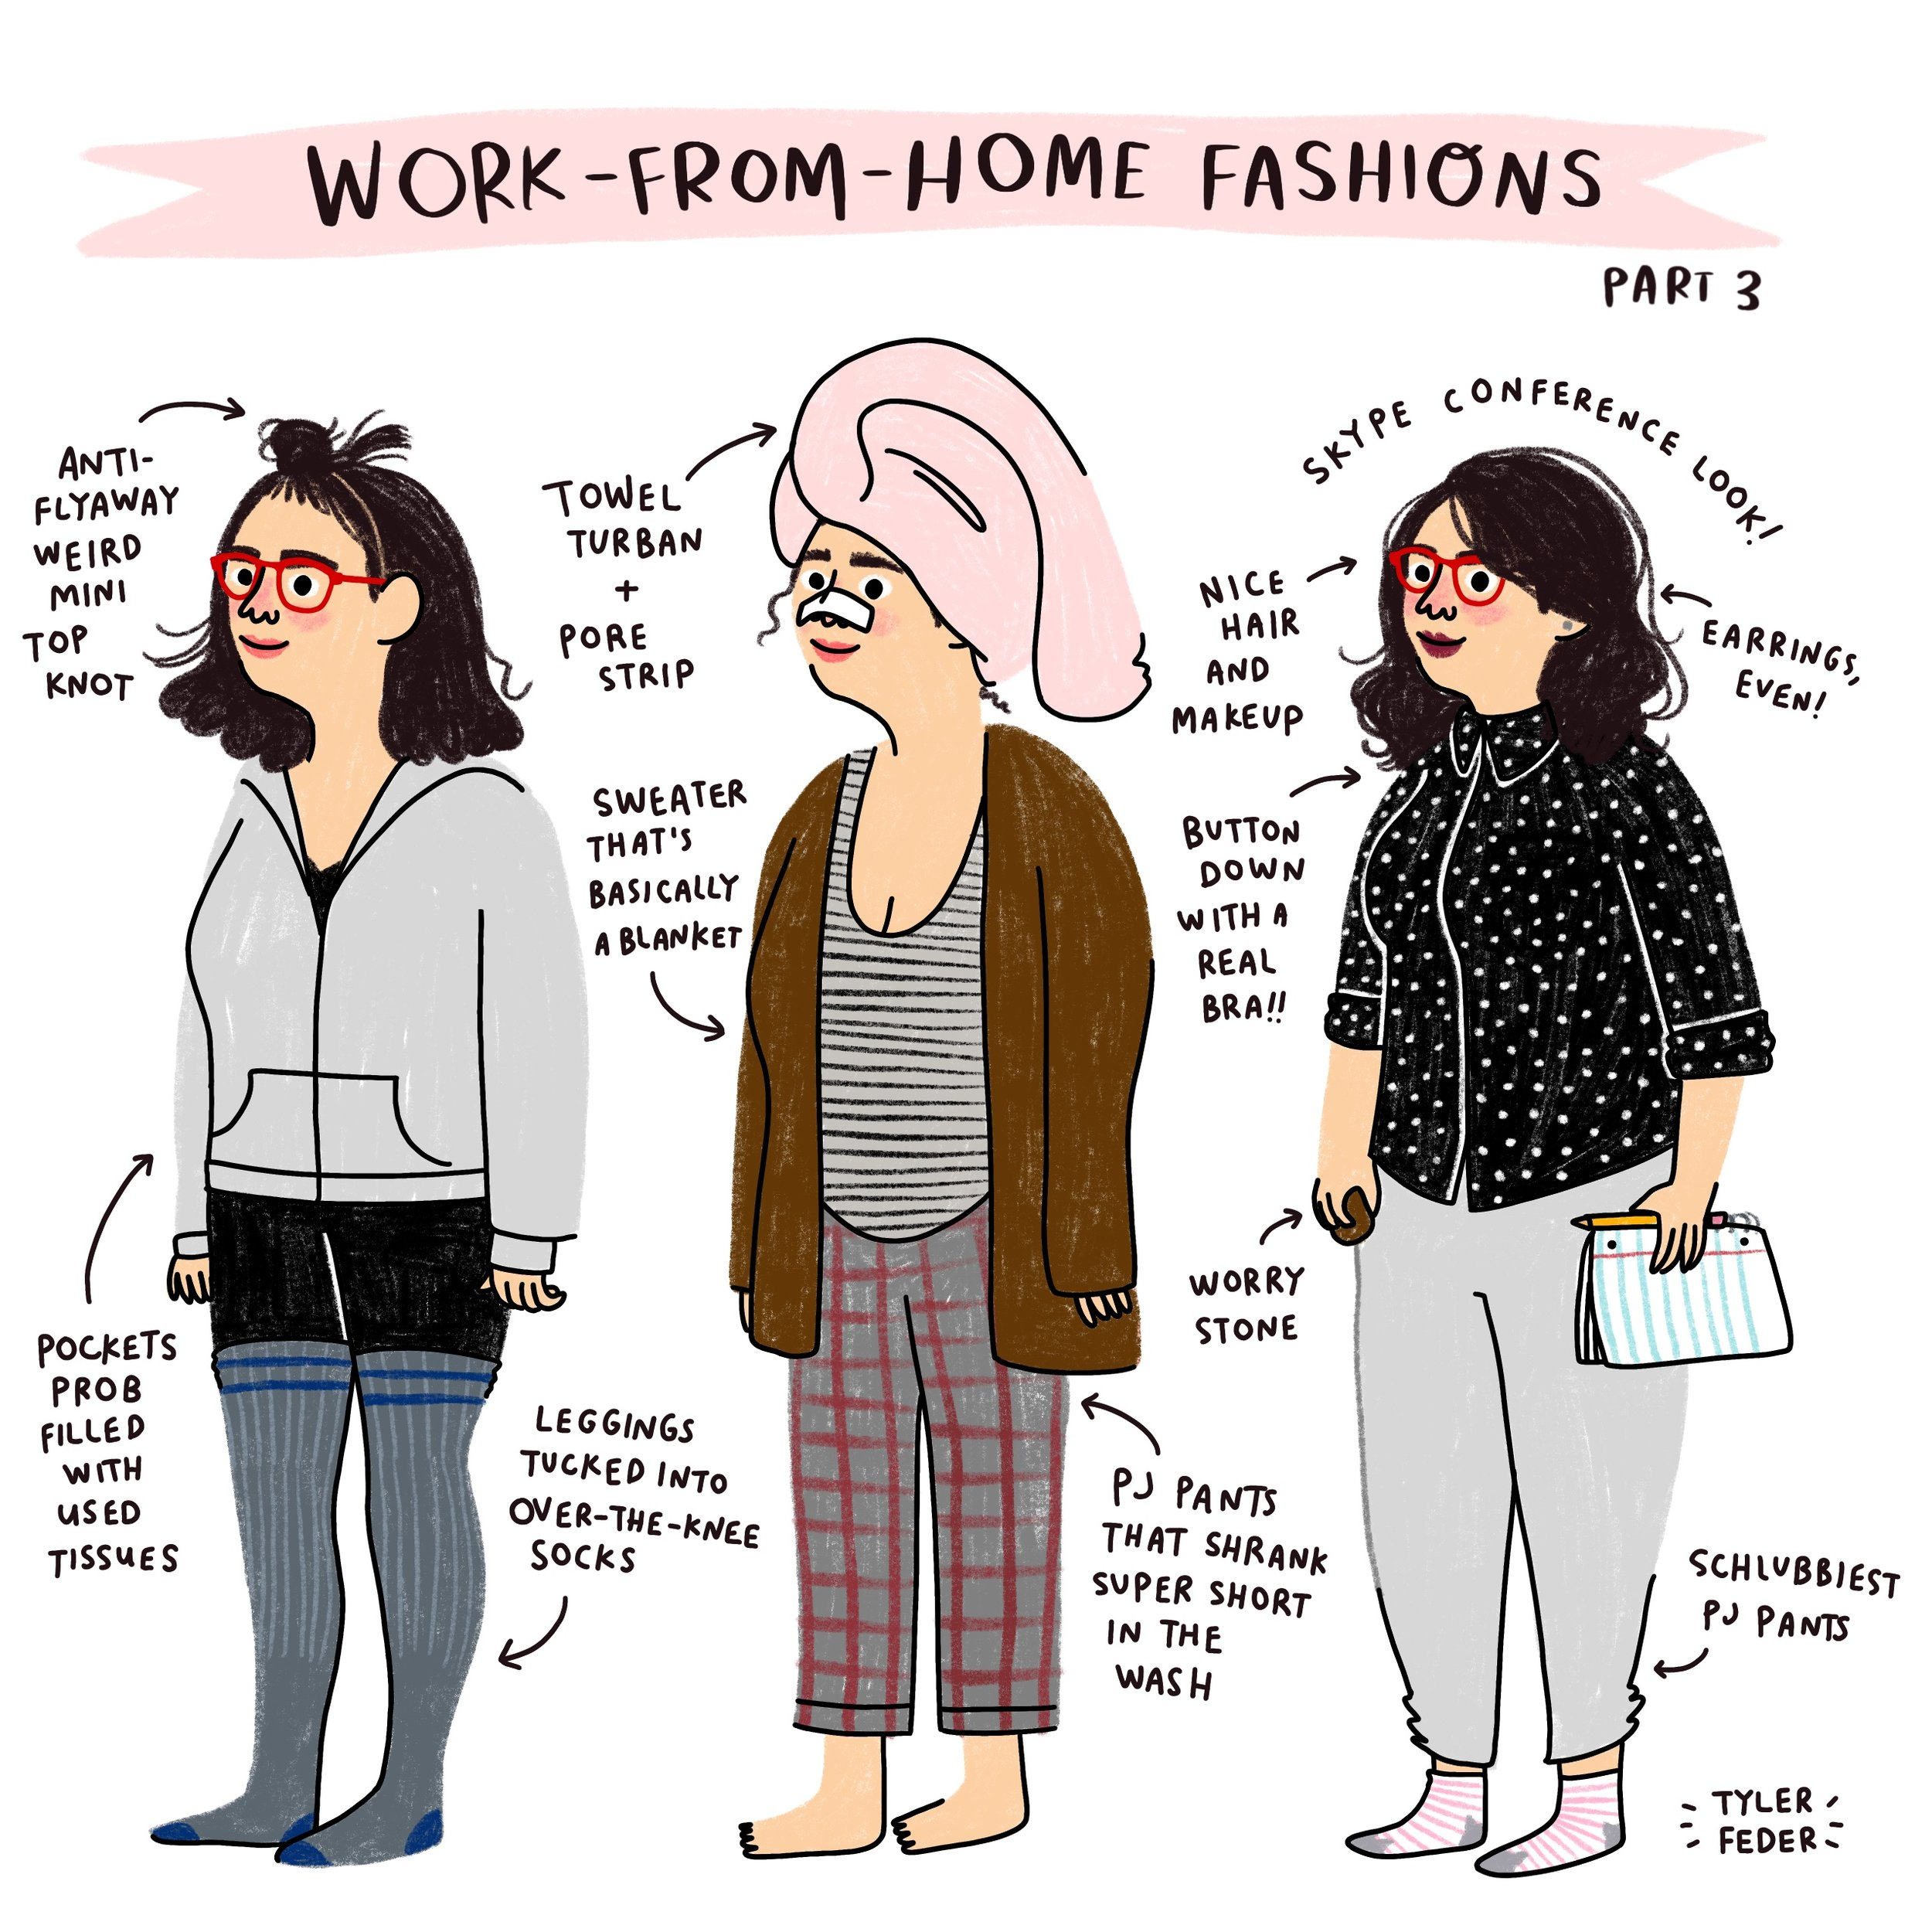 Feedback on mỷ phẩm mua ở Nhật - Page 2 Work_From_Home_Fashions_3+2